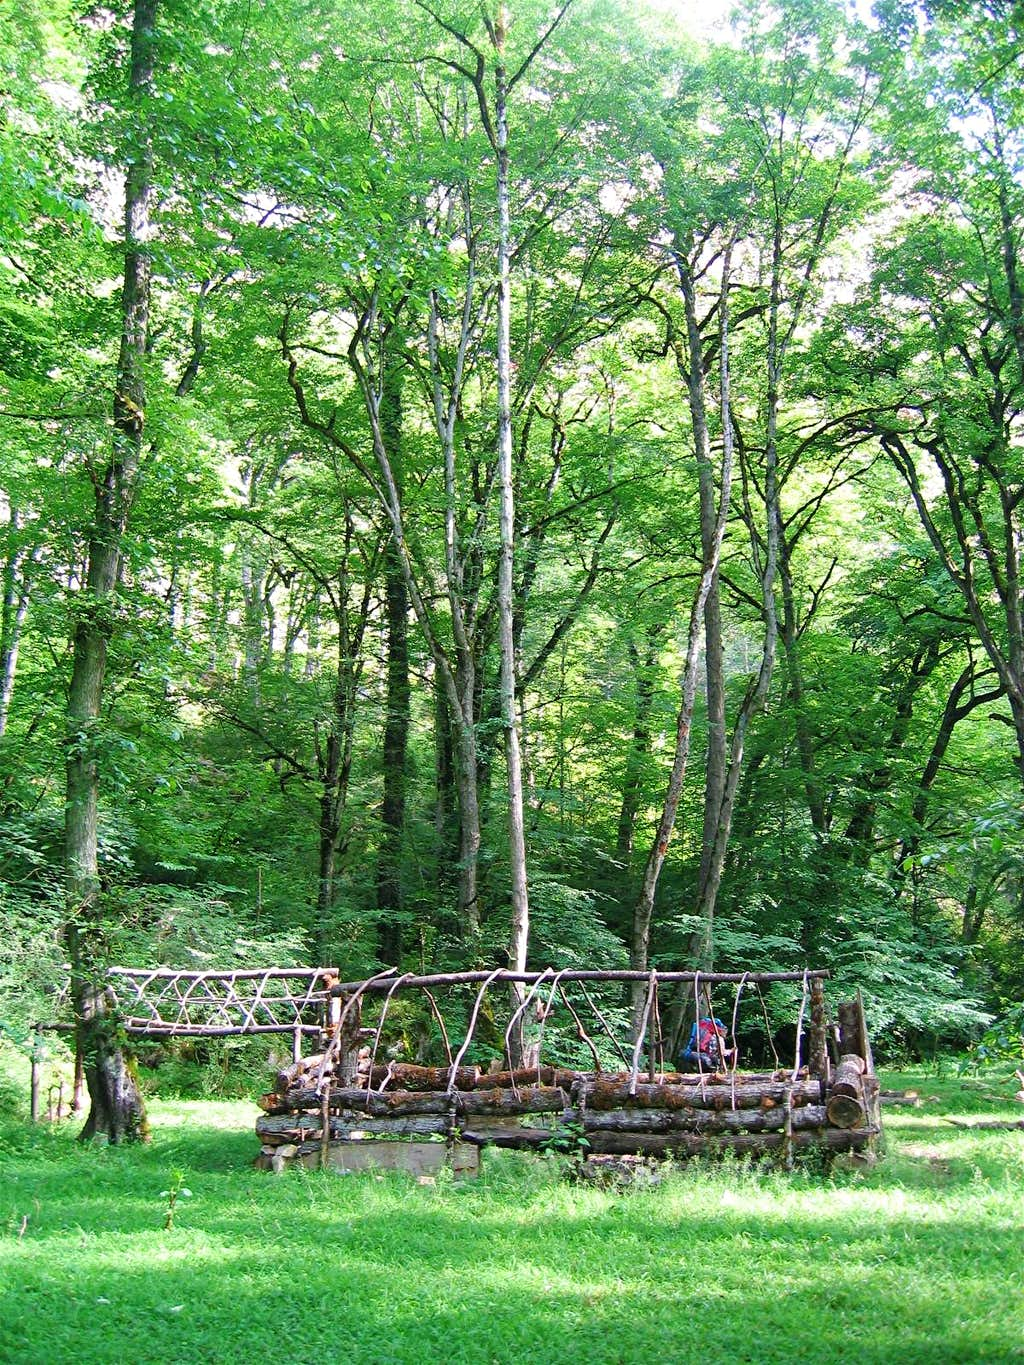 Structure in the Meadow